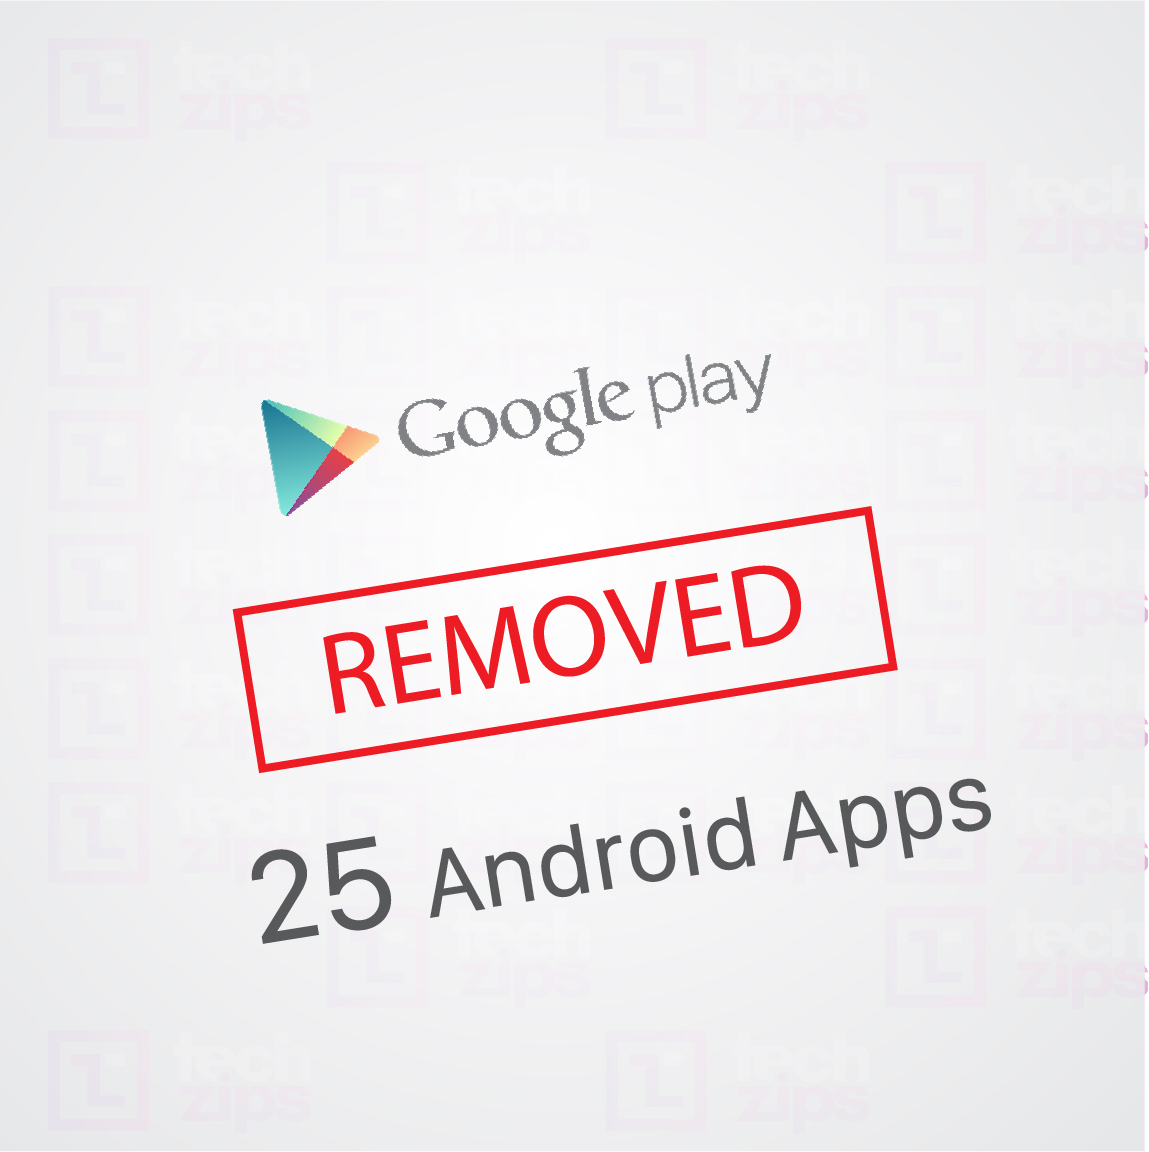 google removed 25 android apps